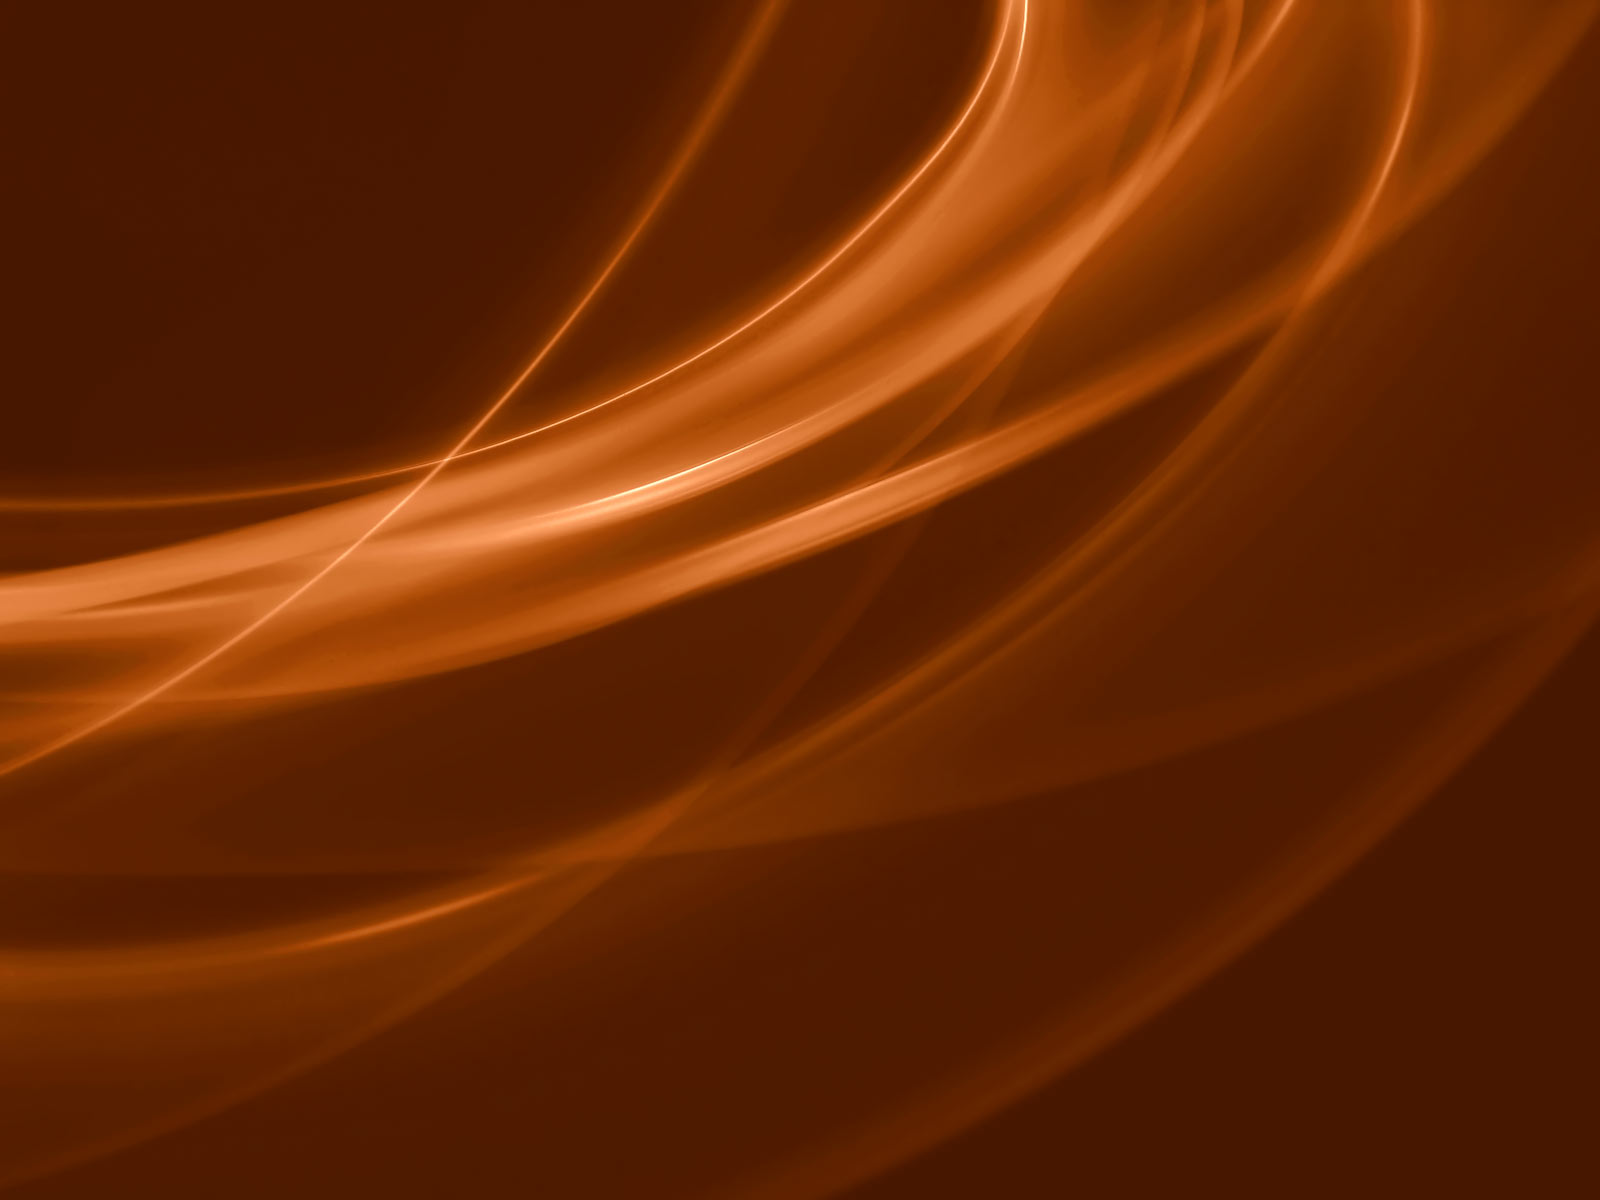 Brown abstract wallpaper wallpapersafari for Brown wallpaper for walls